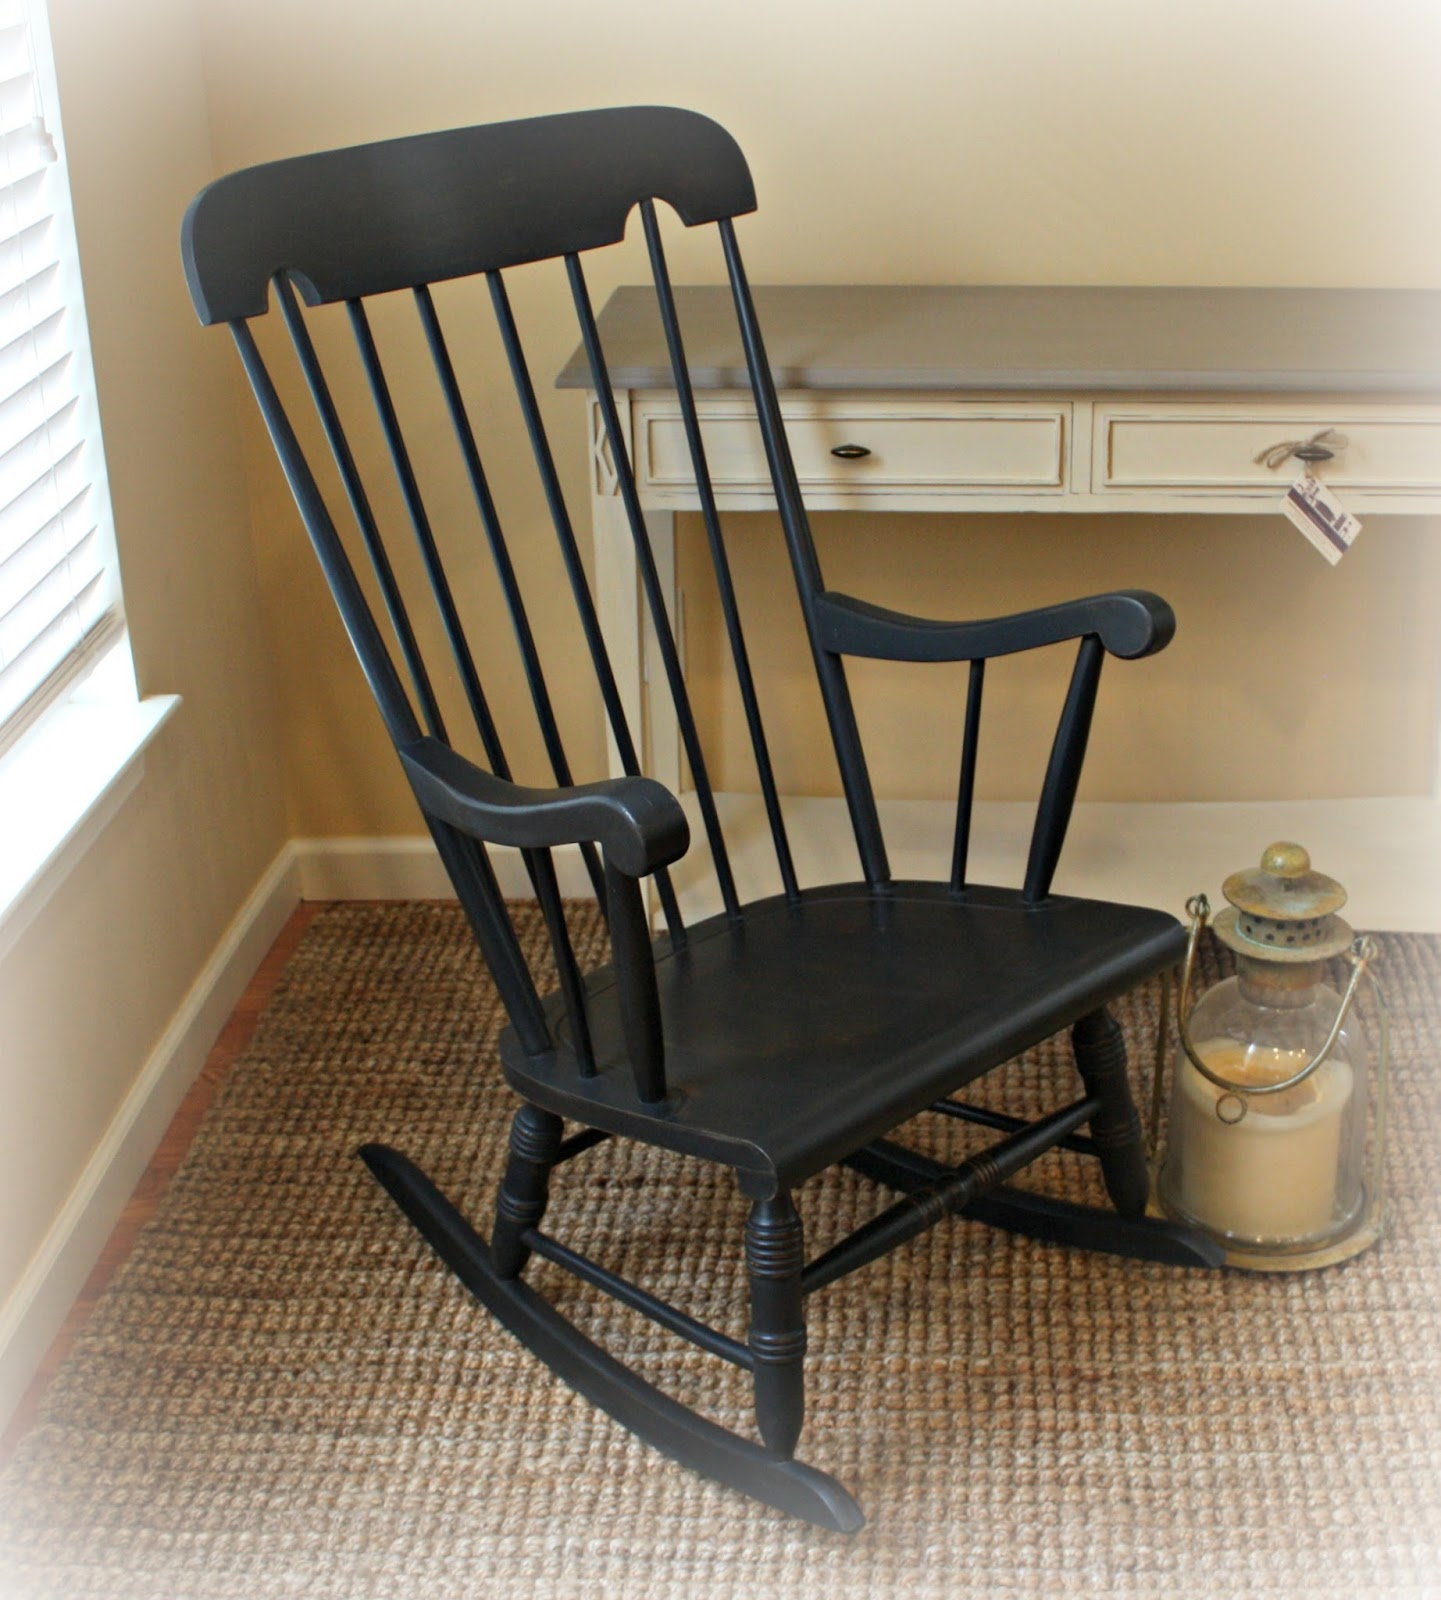 Vintage Rocking Chairs Keekaroo High Chair Infant Insert With Damaged Finish Gets A New Look